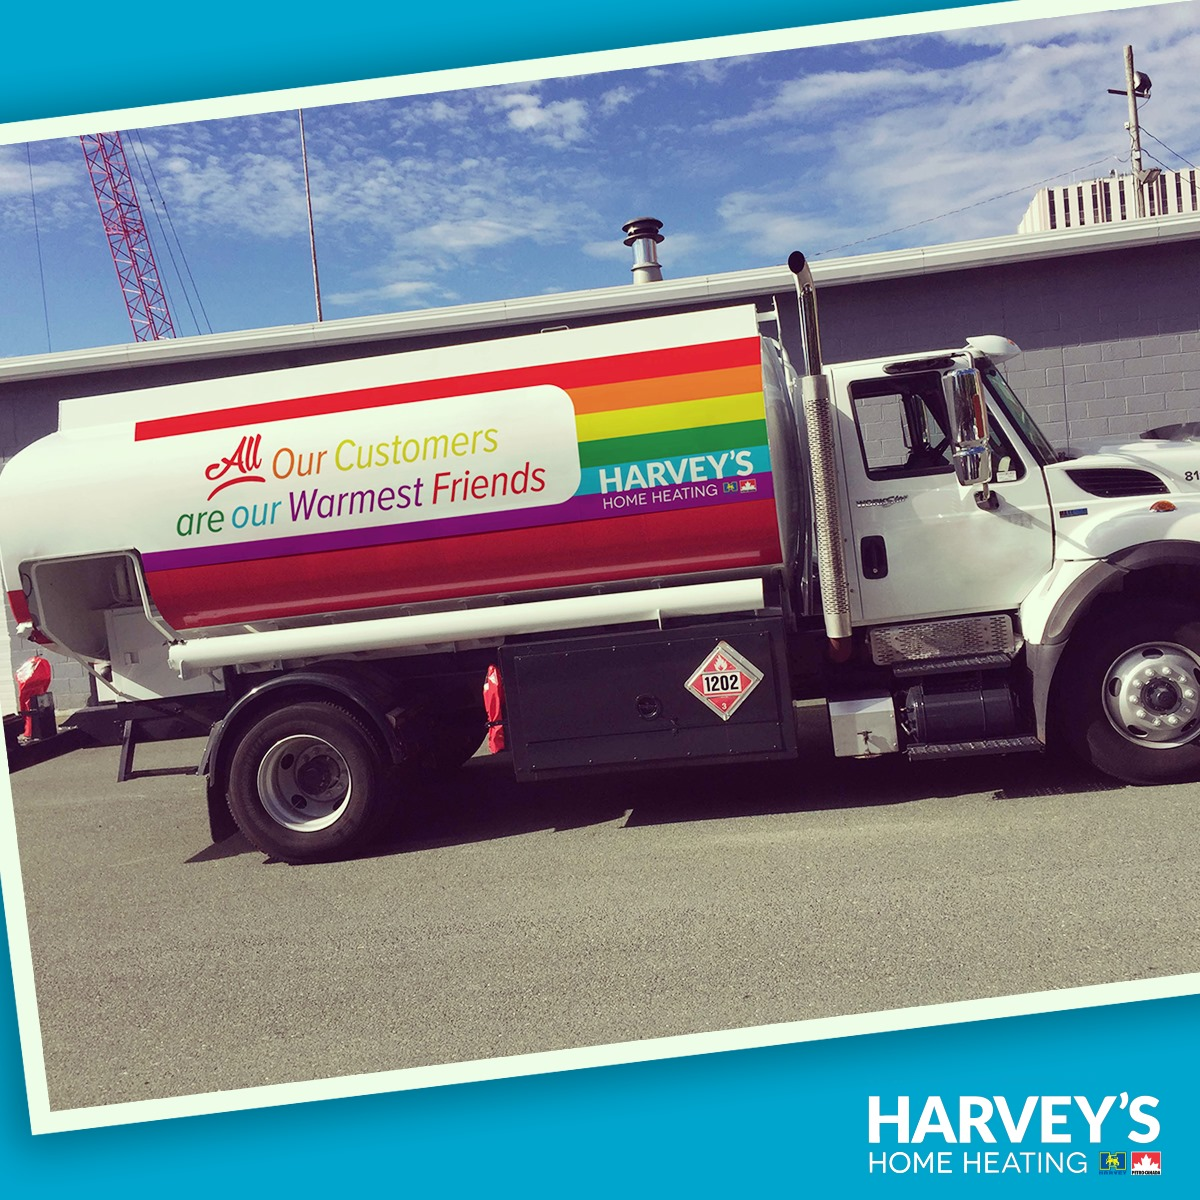 Harvey's Home Heating Truck at Pride